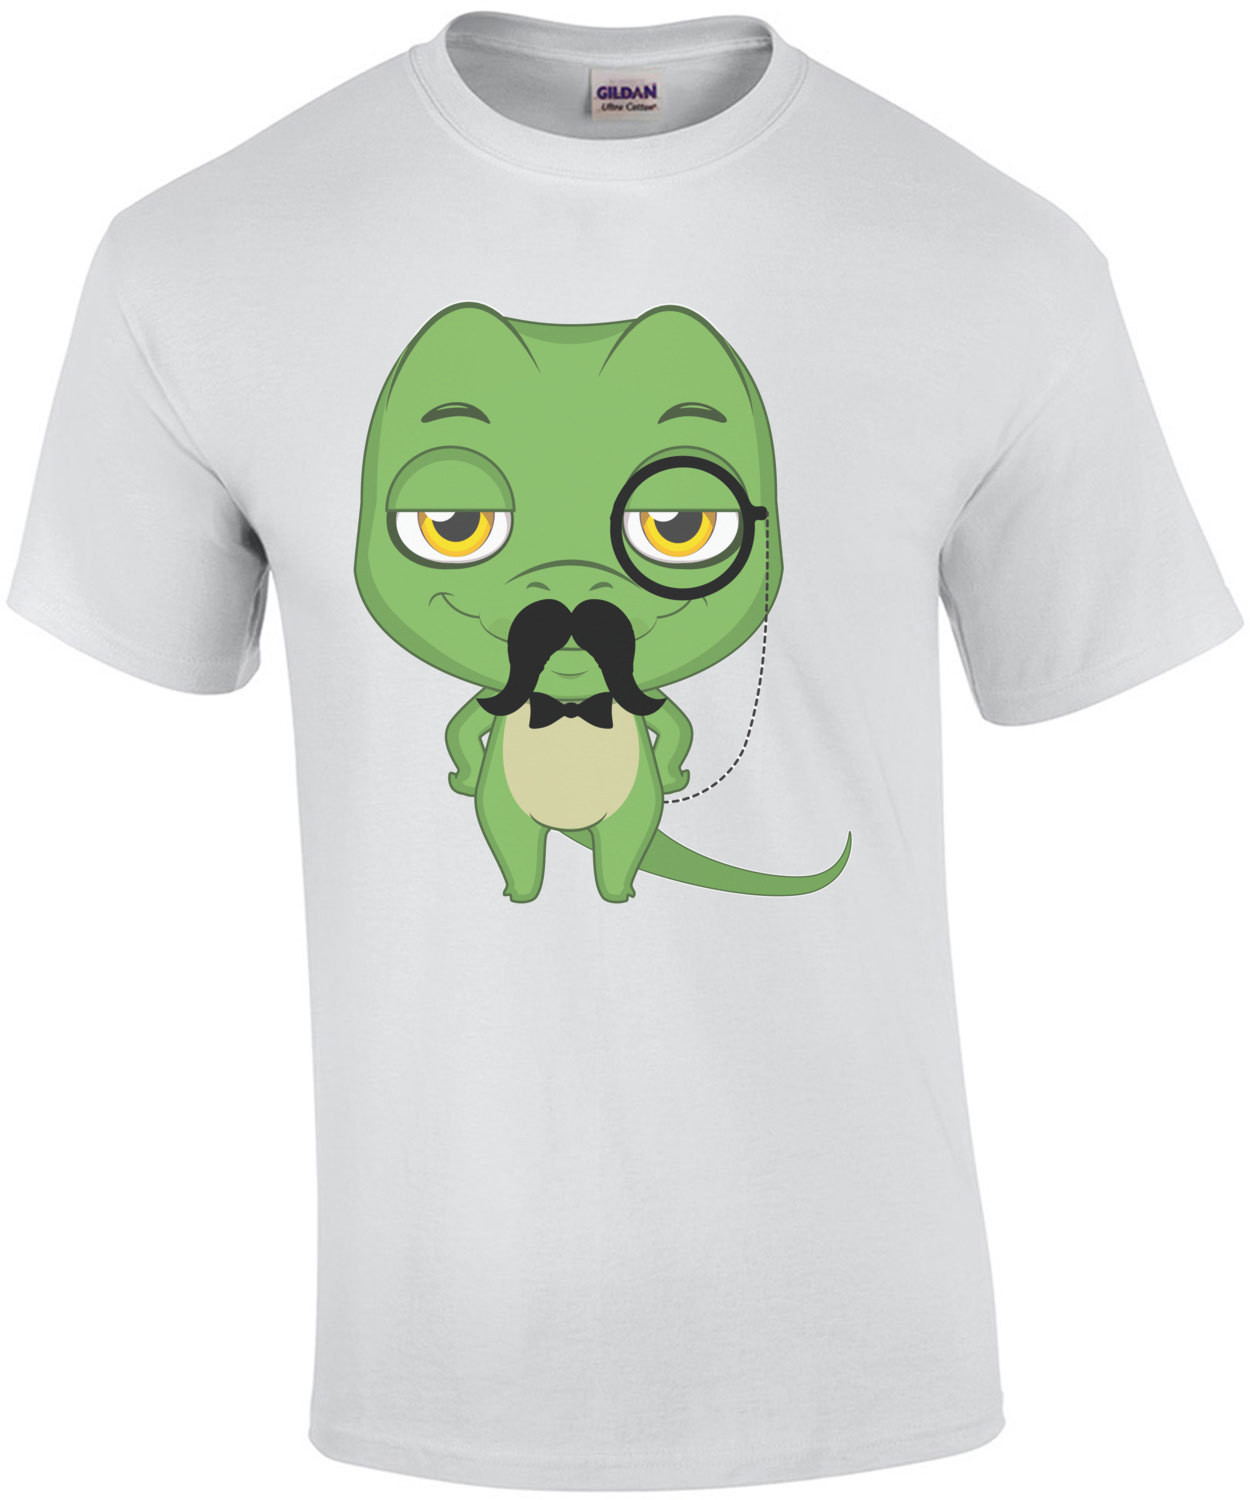 Lizard with a mustache wearing a monocle t-shirt